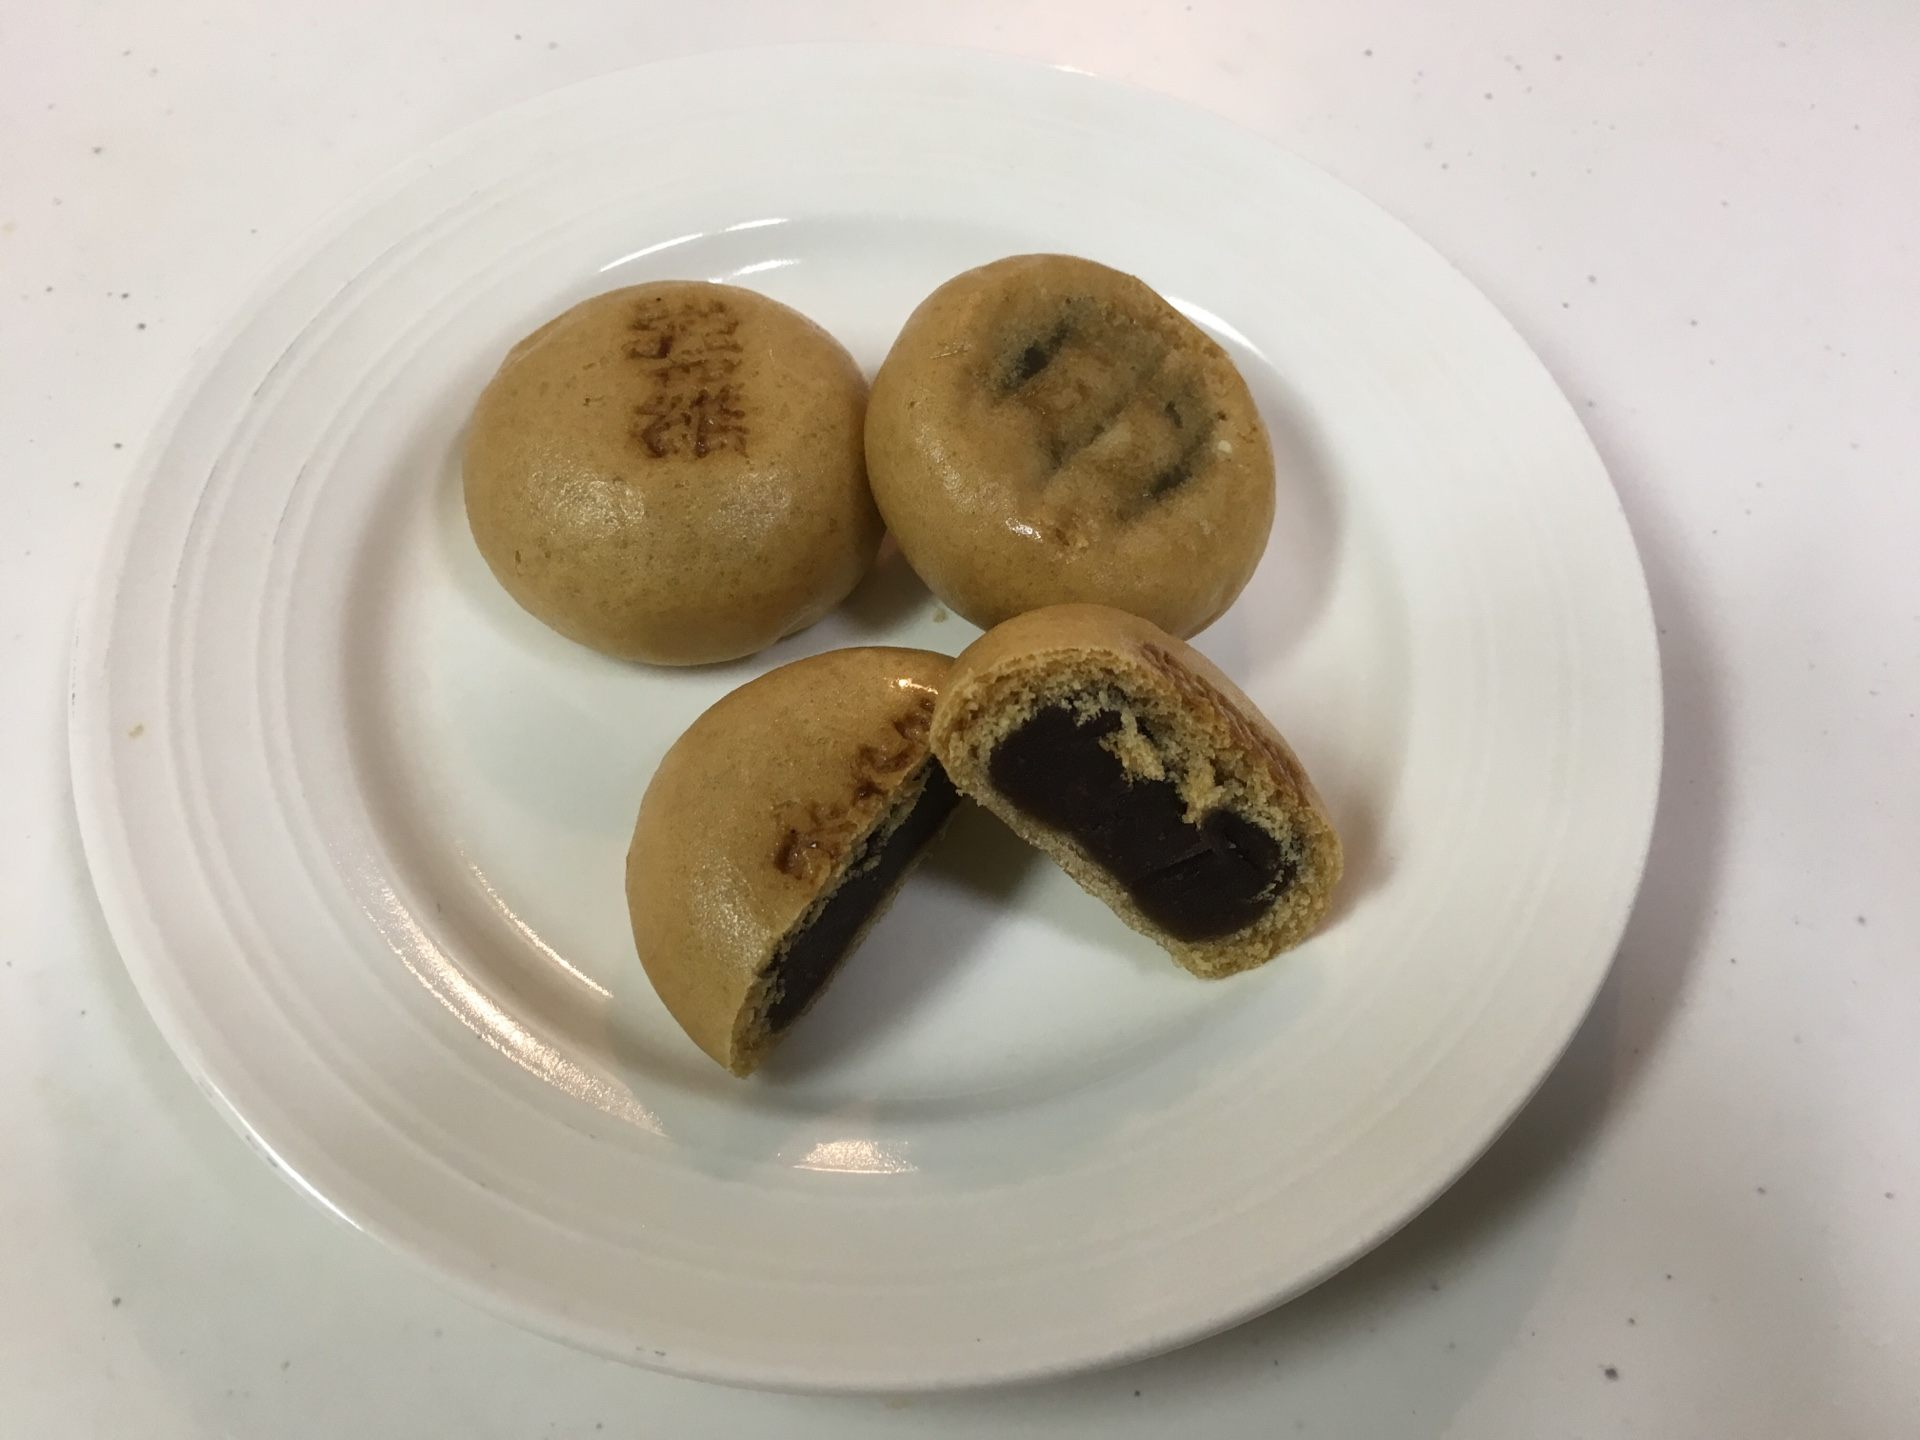 Packed with Red Bean Paste